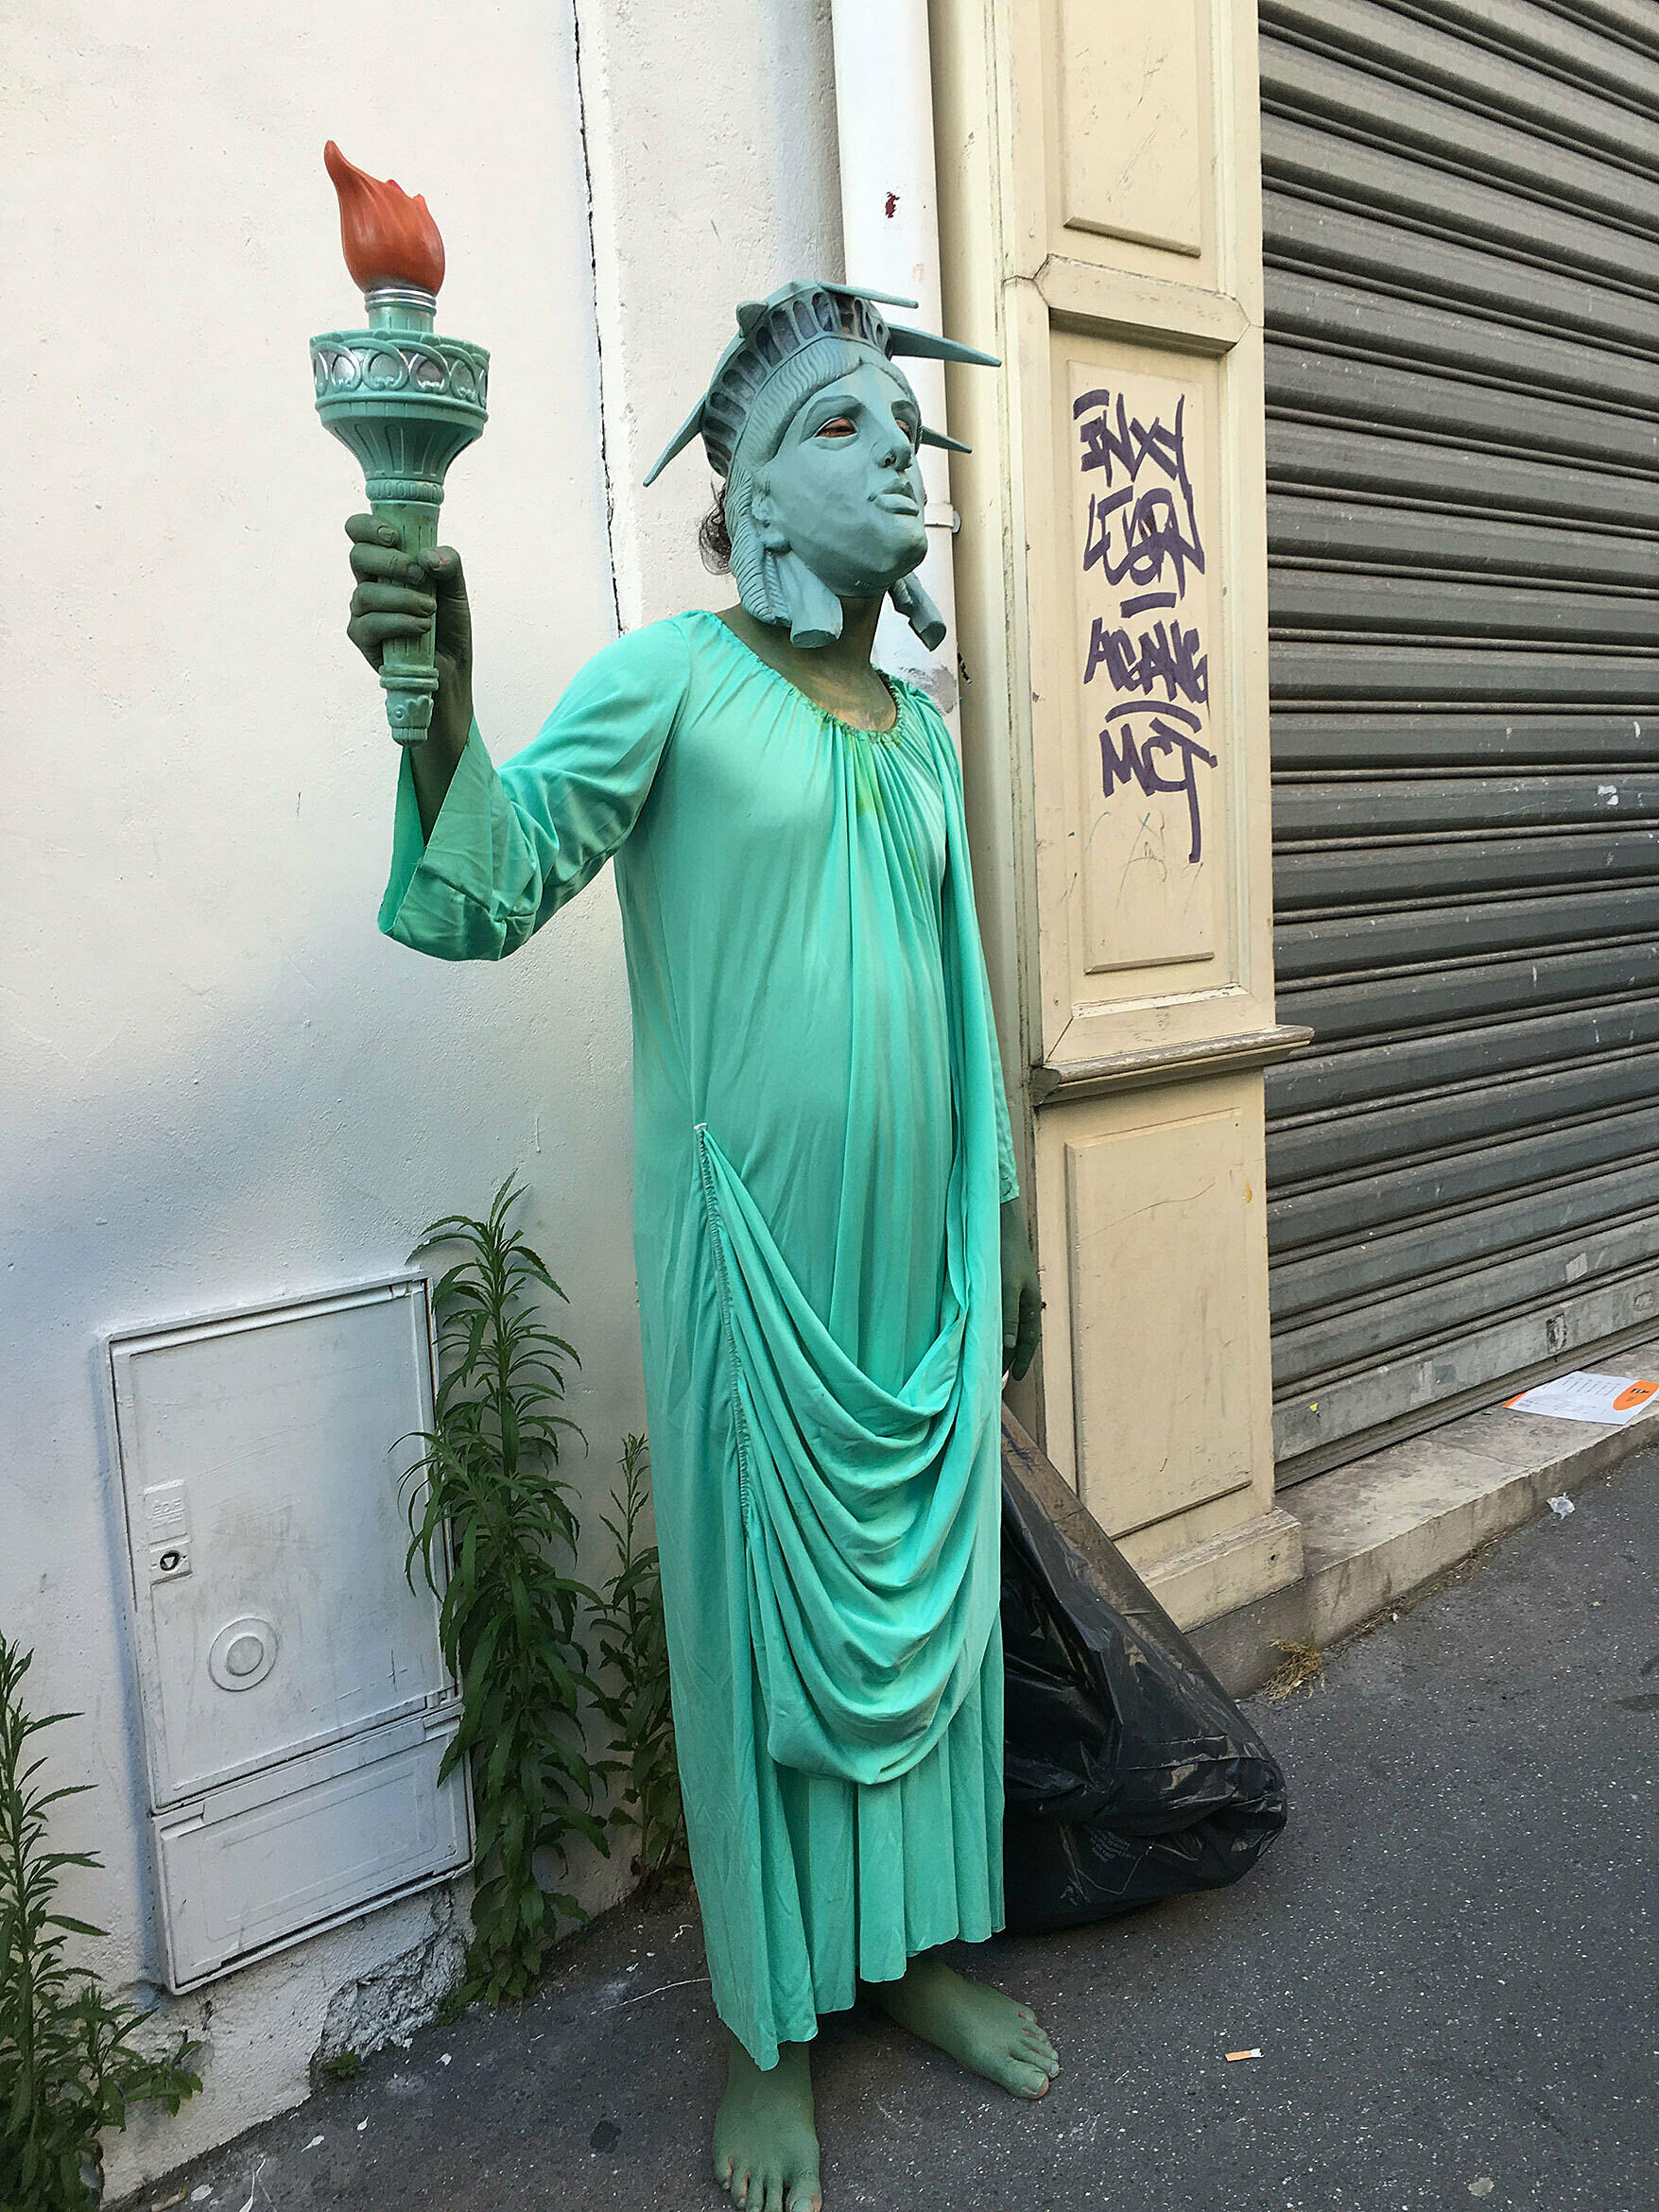 artist dressed as statue of liberty holding garbage bag